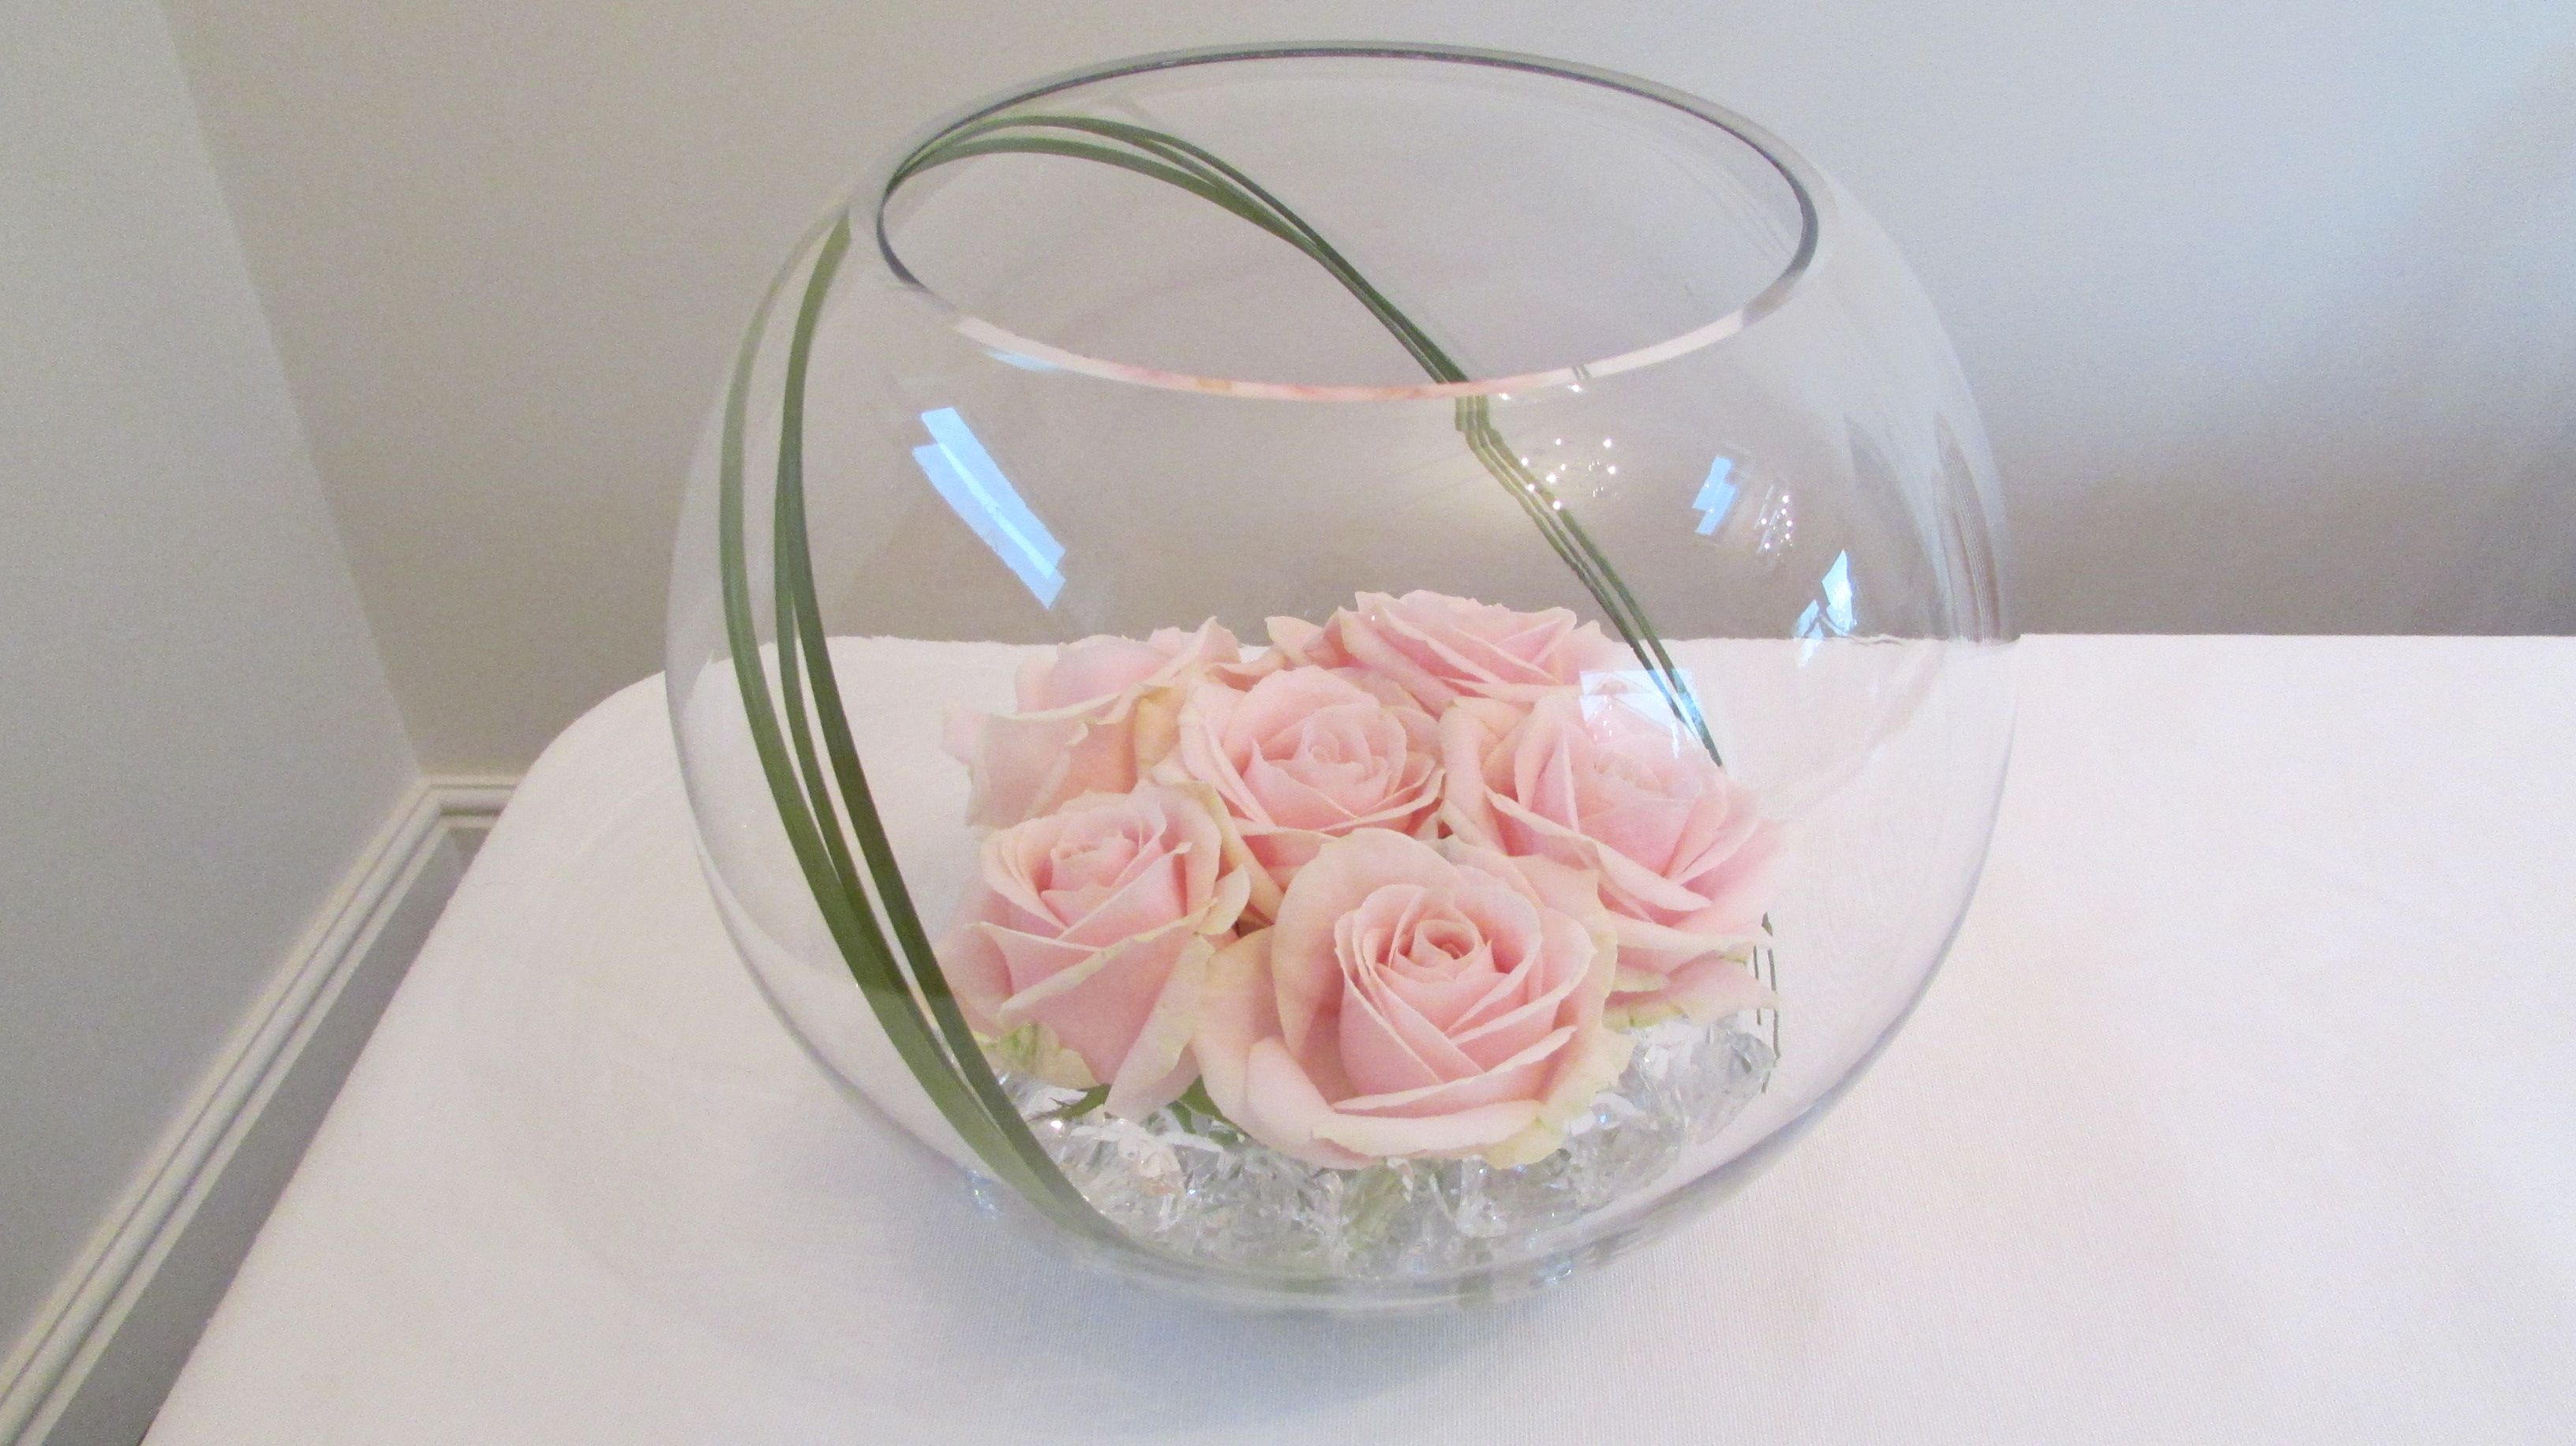 Goldfish bowl with pink sweet avalanche roses & Goldfish bowl with pink sweet avalanche roses | Wedding | Pinterest ...